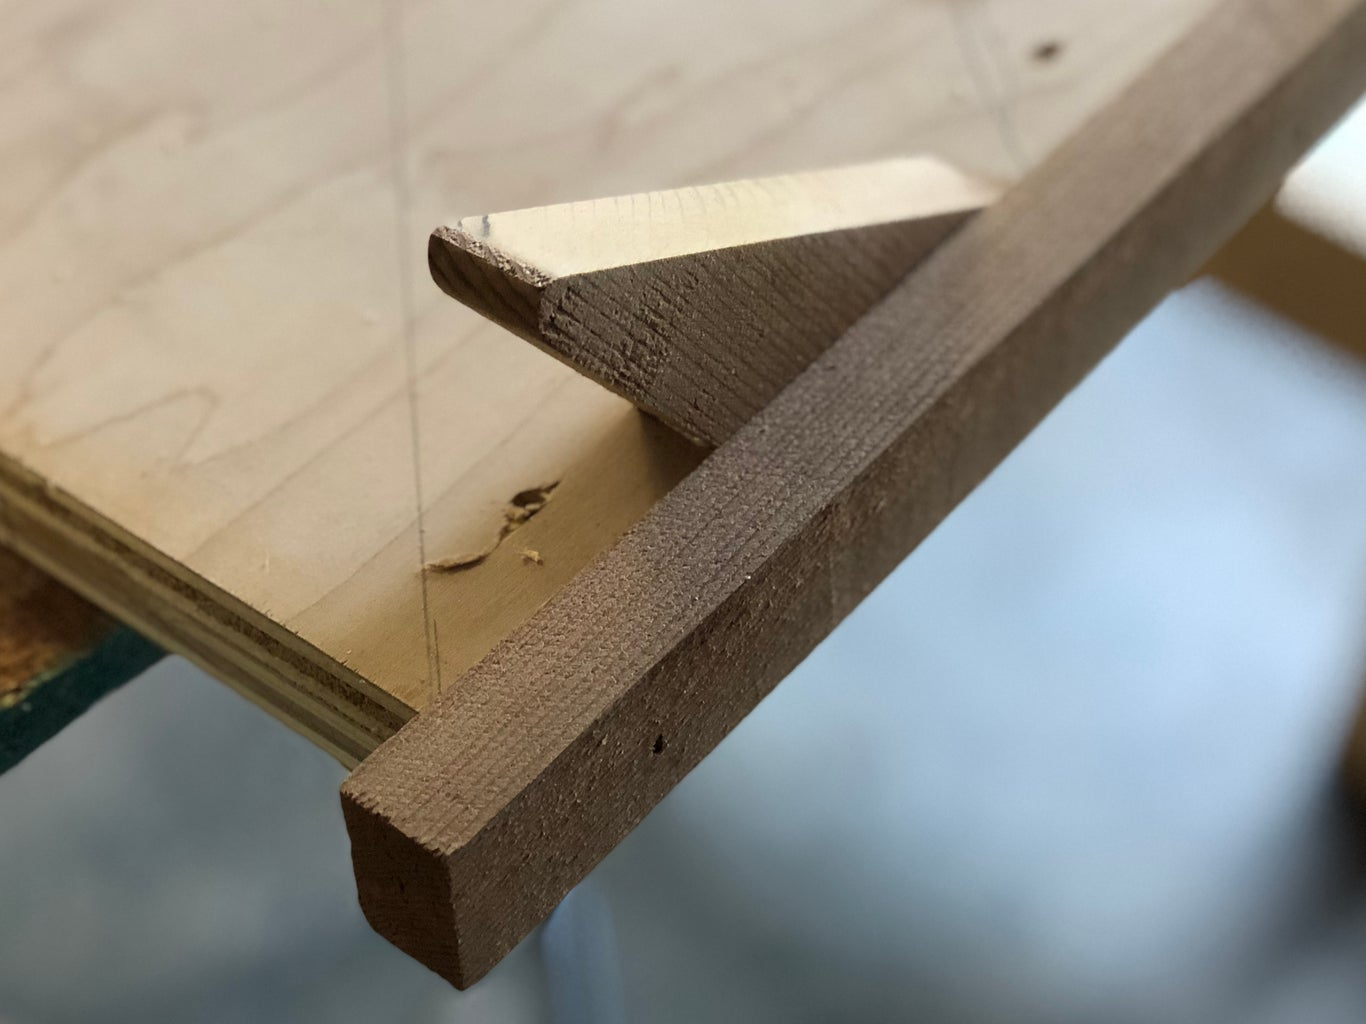 Attach Hooks and Strips